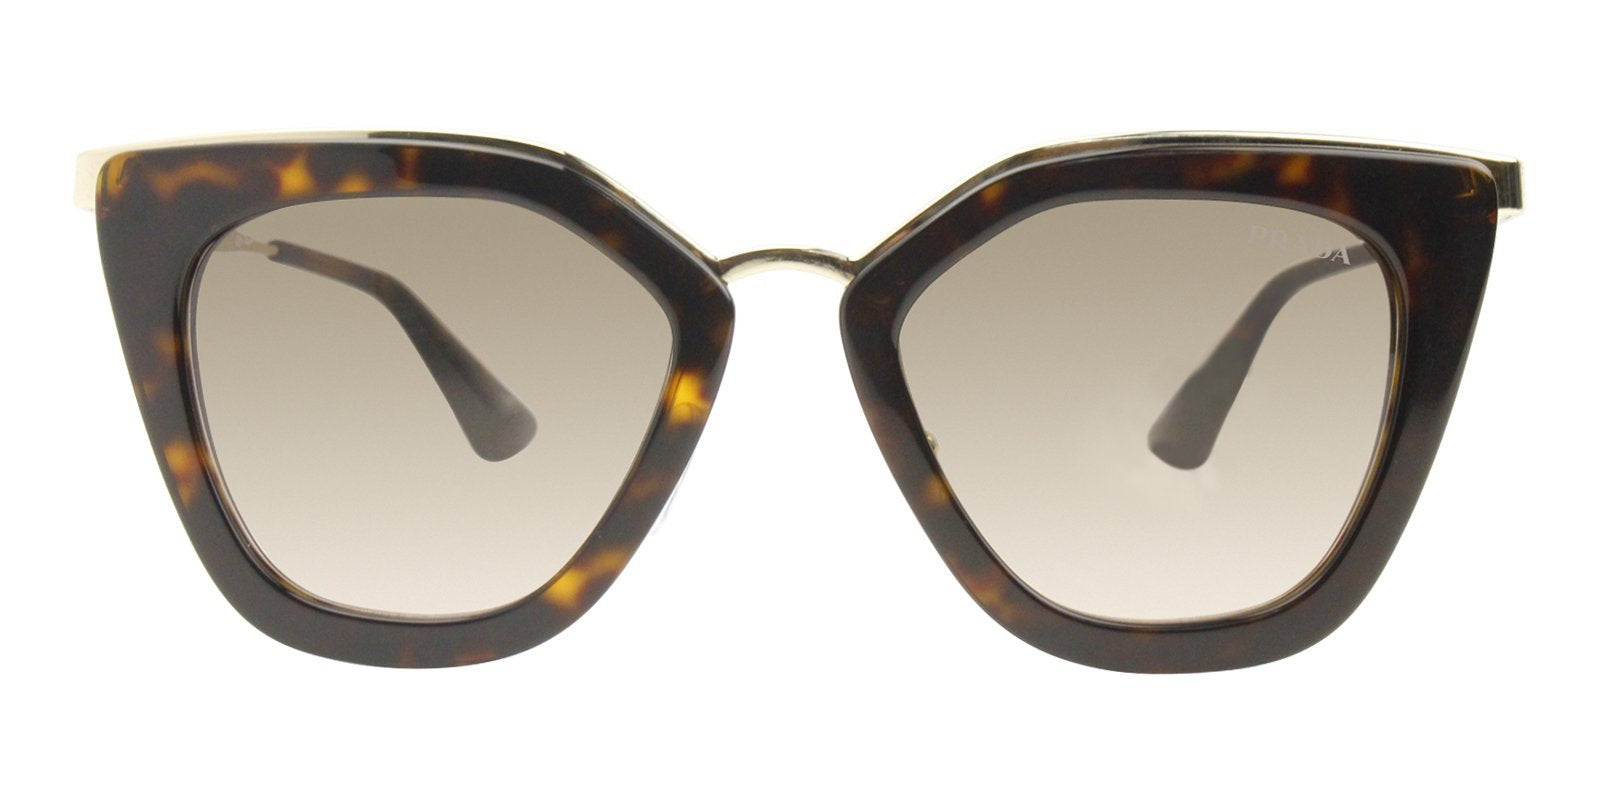 Prada - PR53SS Tortoise/Brown Gradient Oval Women Sunglasses - 52mm-Sunglasses-Designer Eyes